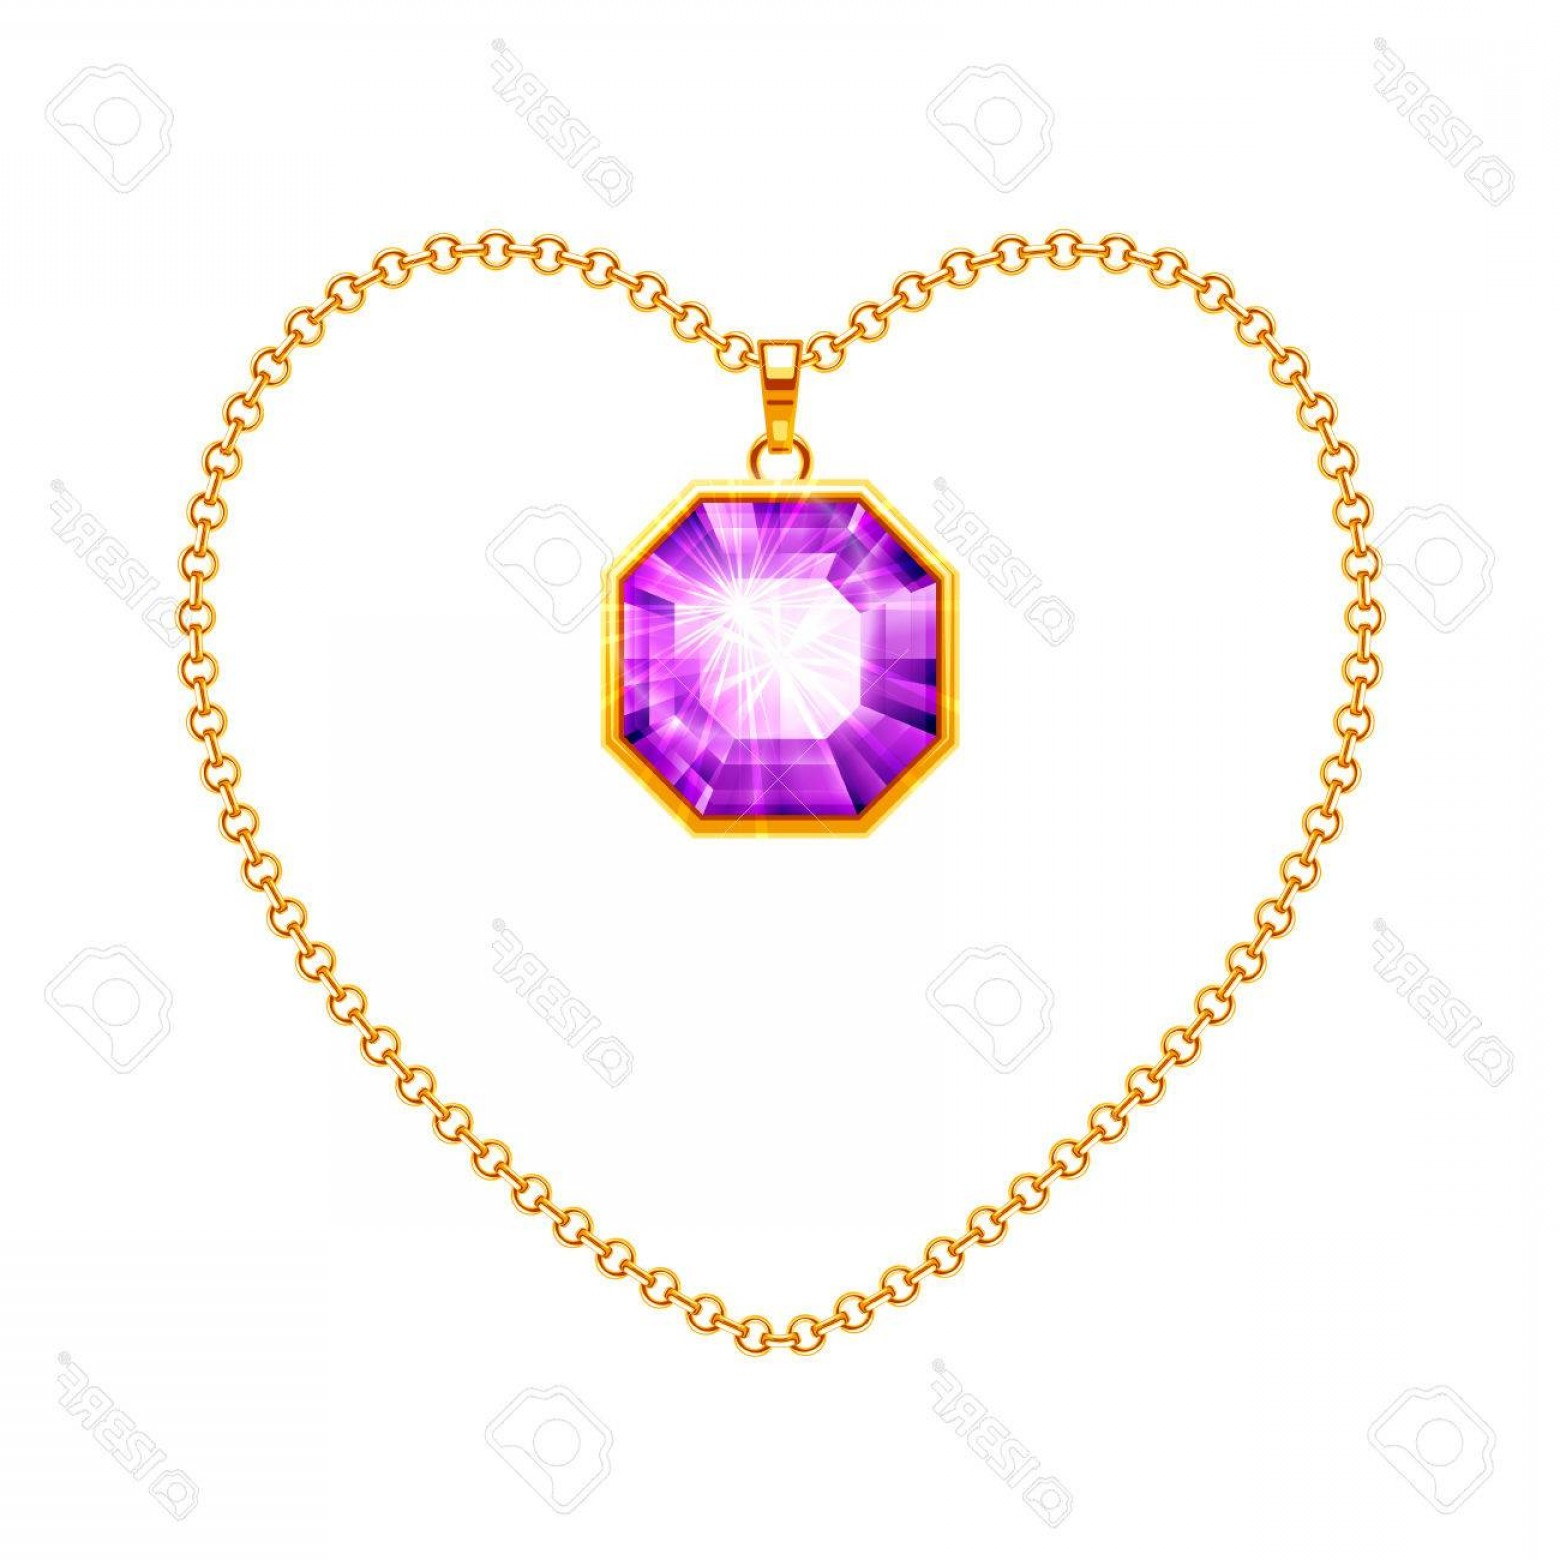 1560x1560 Photostock Vector Golden Chain Necklace With Diamond Pendant